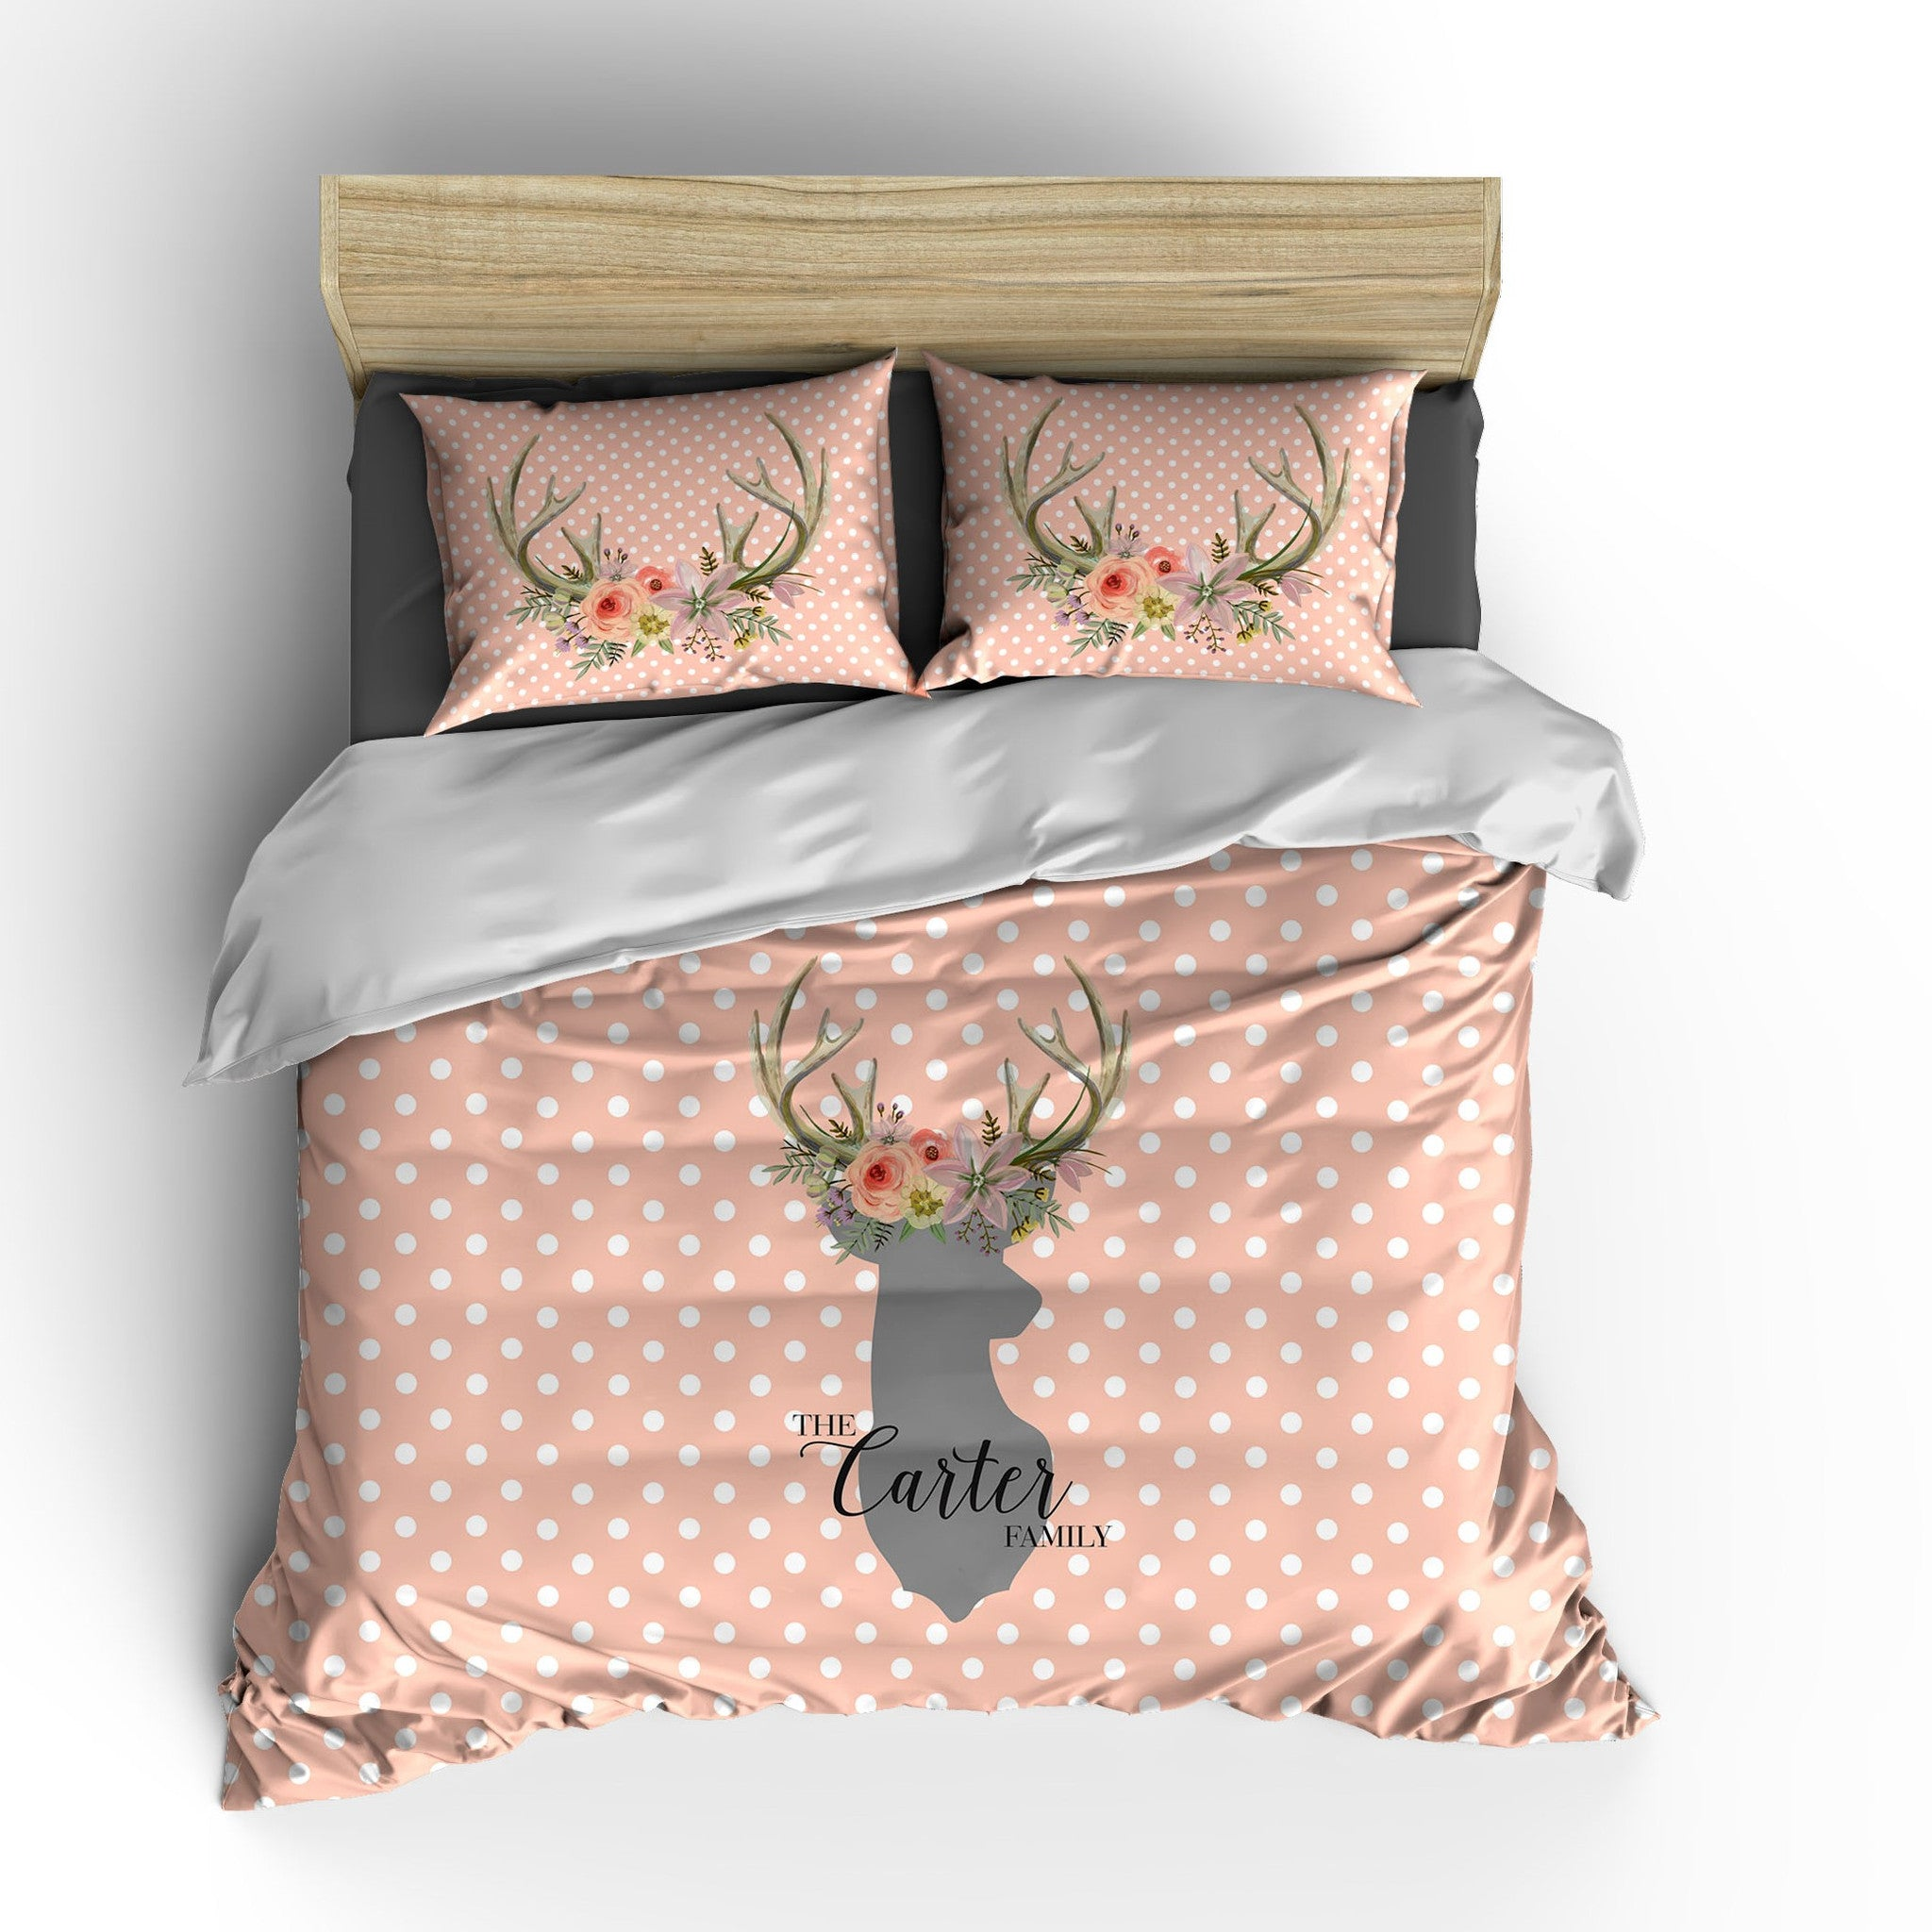 Polka Dot Deer Head Personalized Bedding